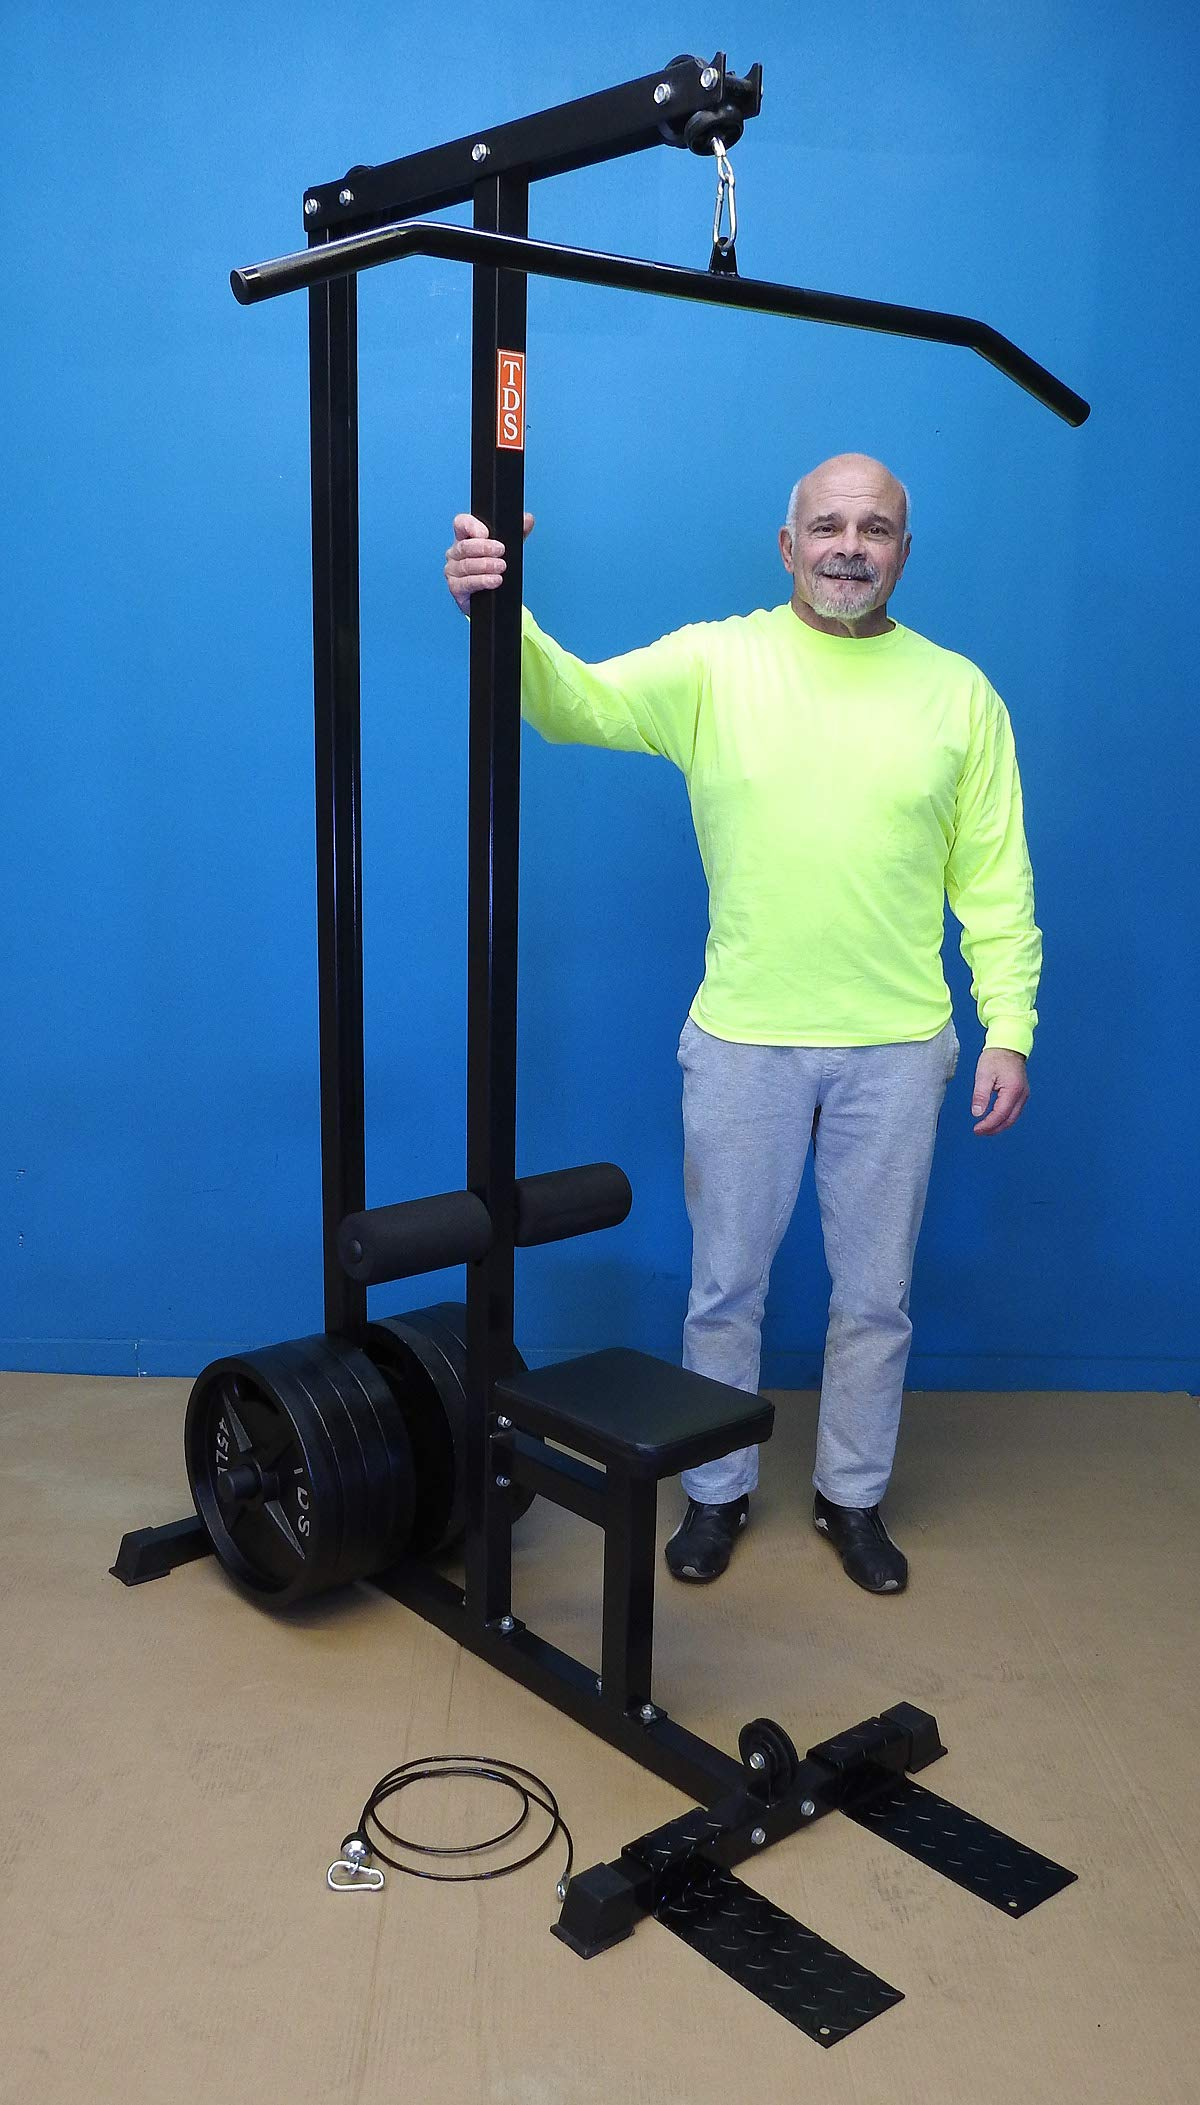 TDS LAT (Triceps) Pulldown Low Row Cable Machine with 400lb Capacity to use Std and OLY Plates, Includes 1.25'' Dia Knurled 48'' Long LAT Bar, Low Row bar & Foot Rest. Shown with 360 lb OLY Plates